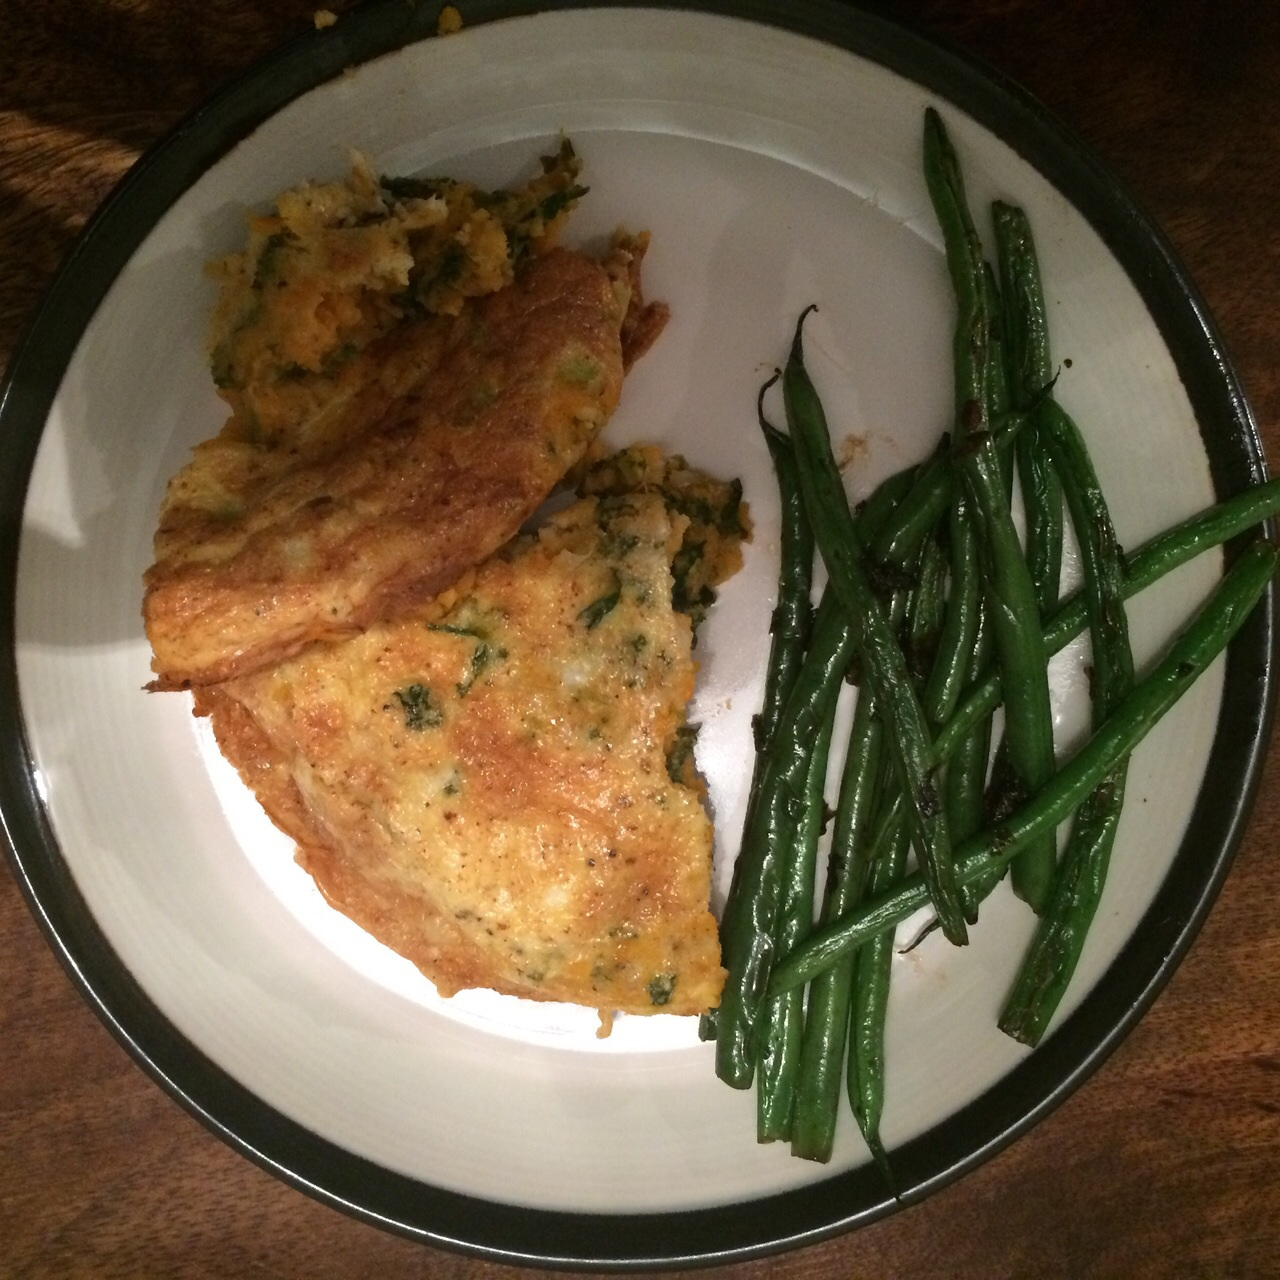 Tastes great with crunchy pan-fried green beans!